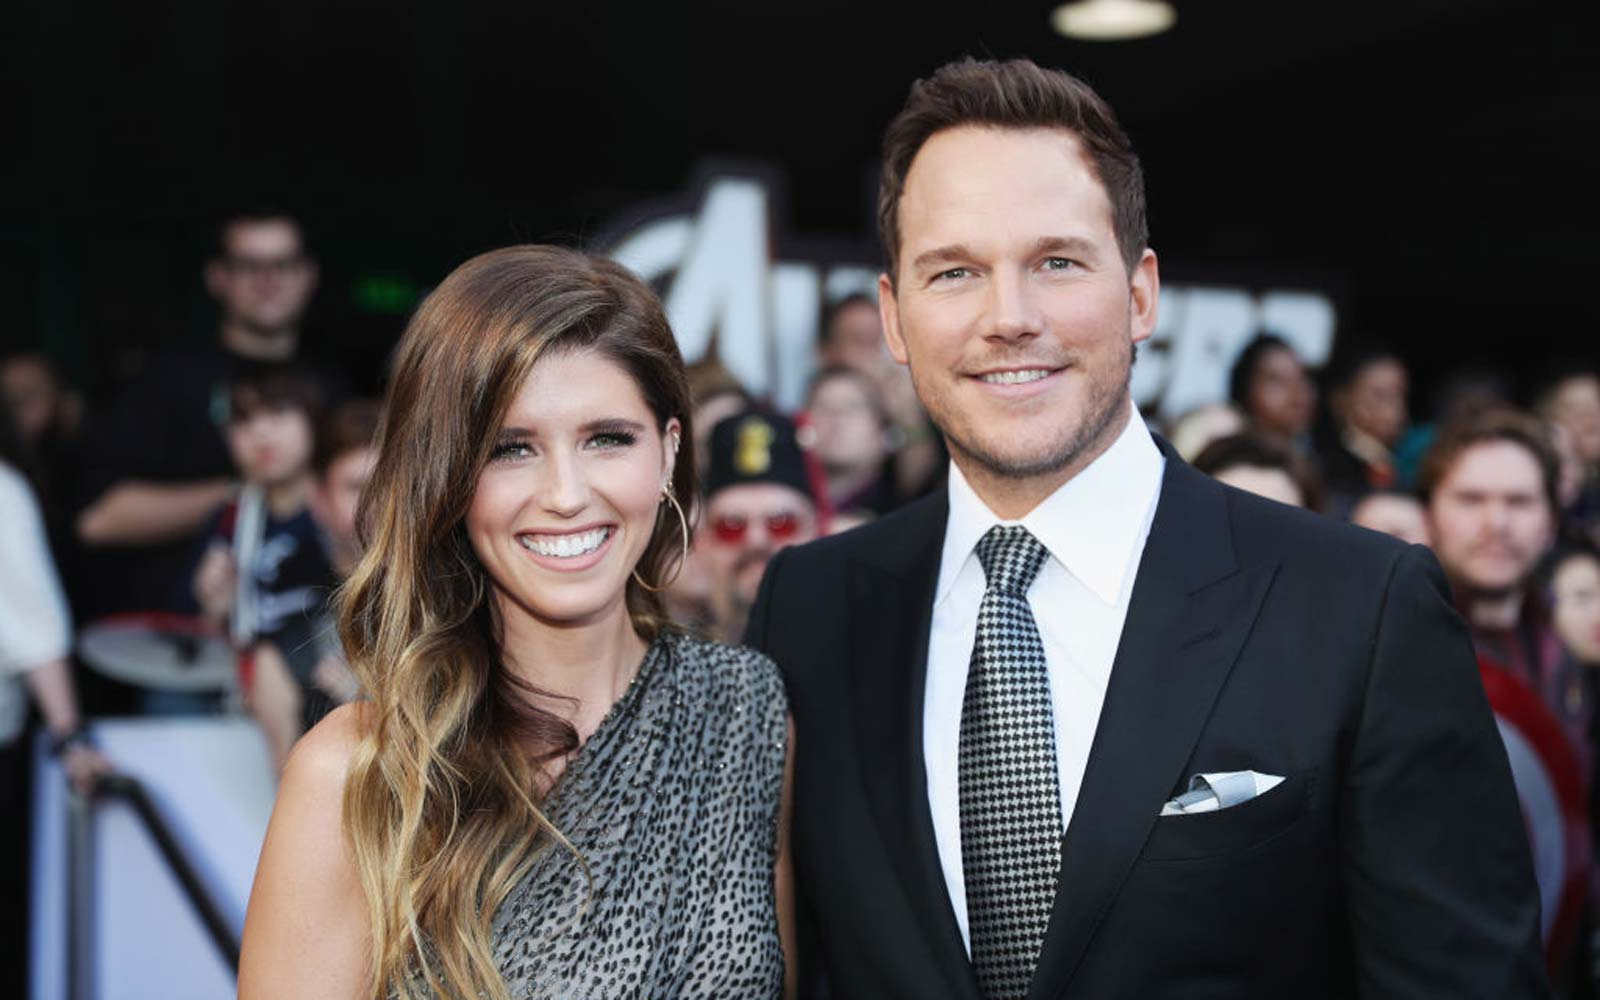 Chris Pratt and Katherine Schwarzenegger Wed at Same Resort Where Her Great Uncle JFK Honeymooned